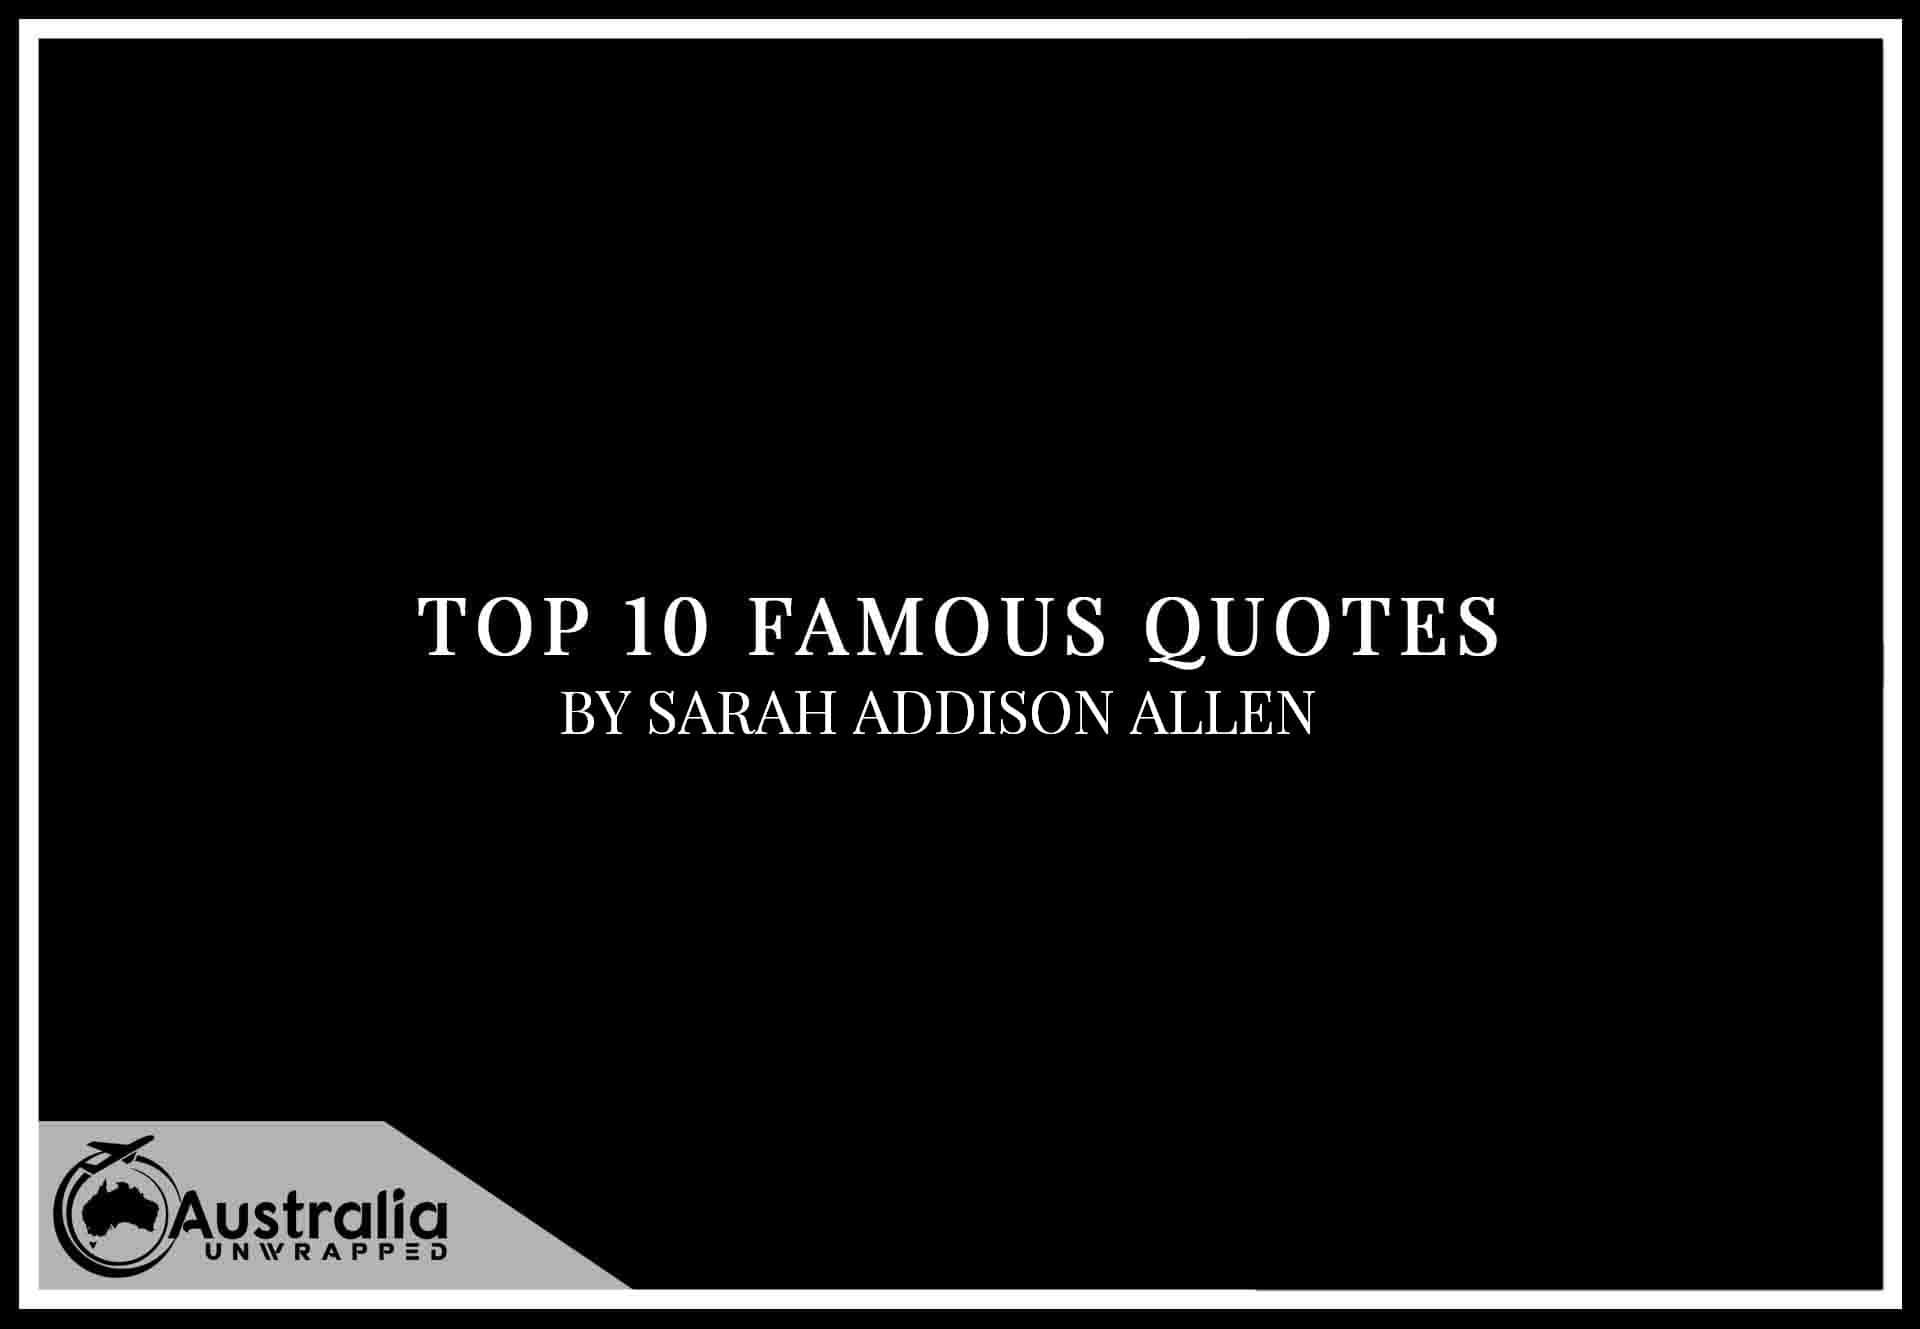 Top 10 Famous Quotes by Author Sarah Addison Allen